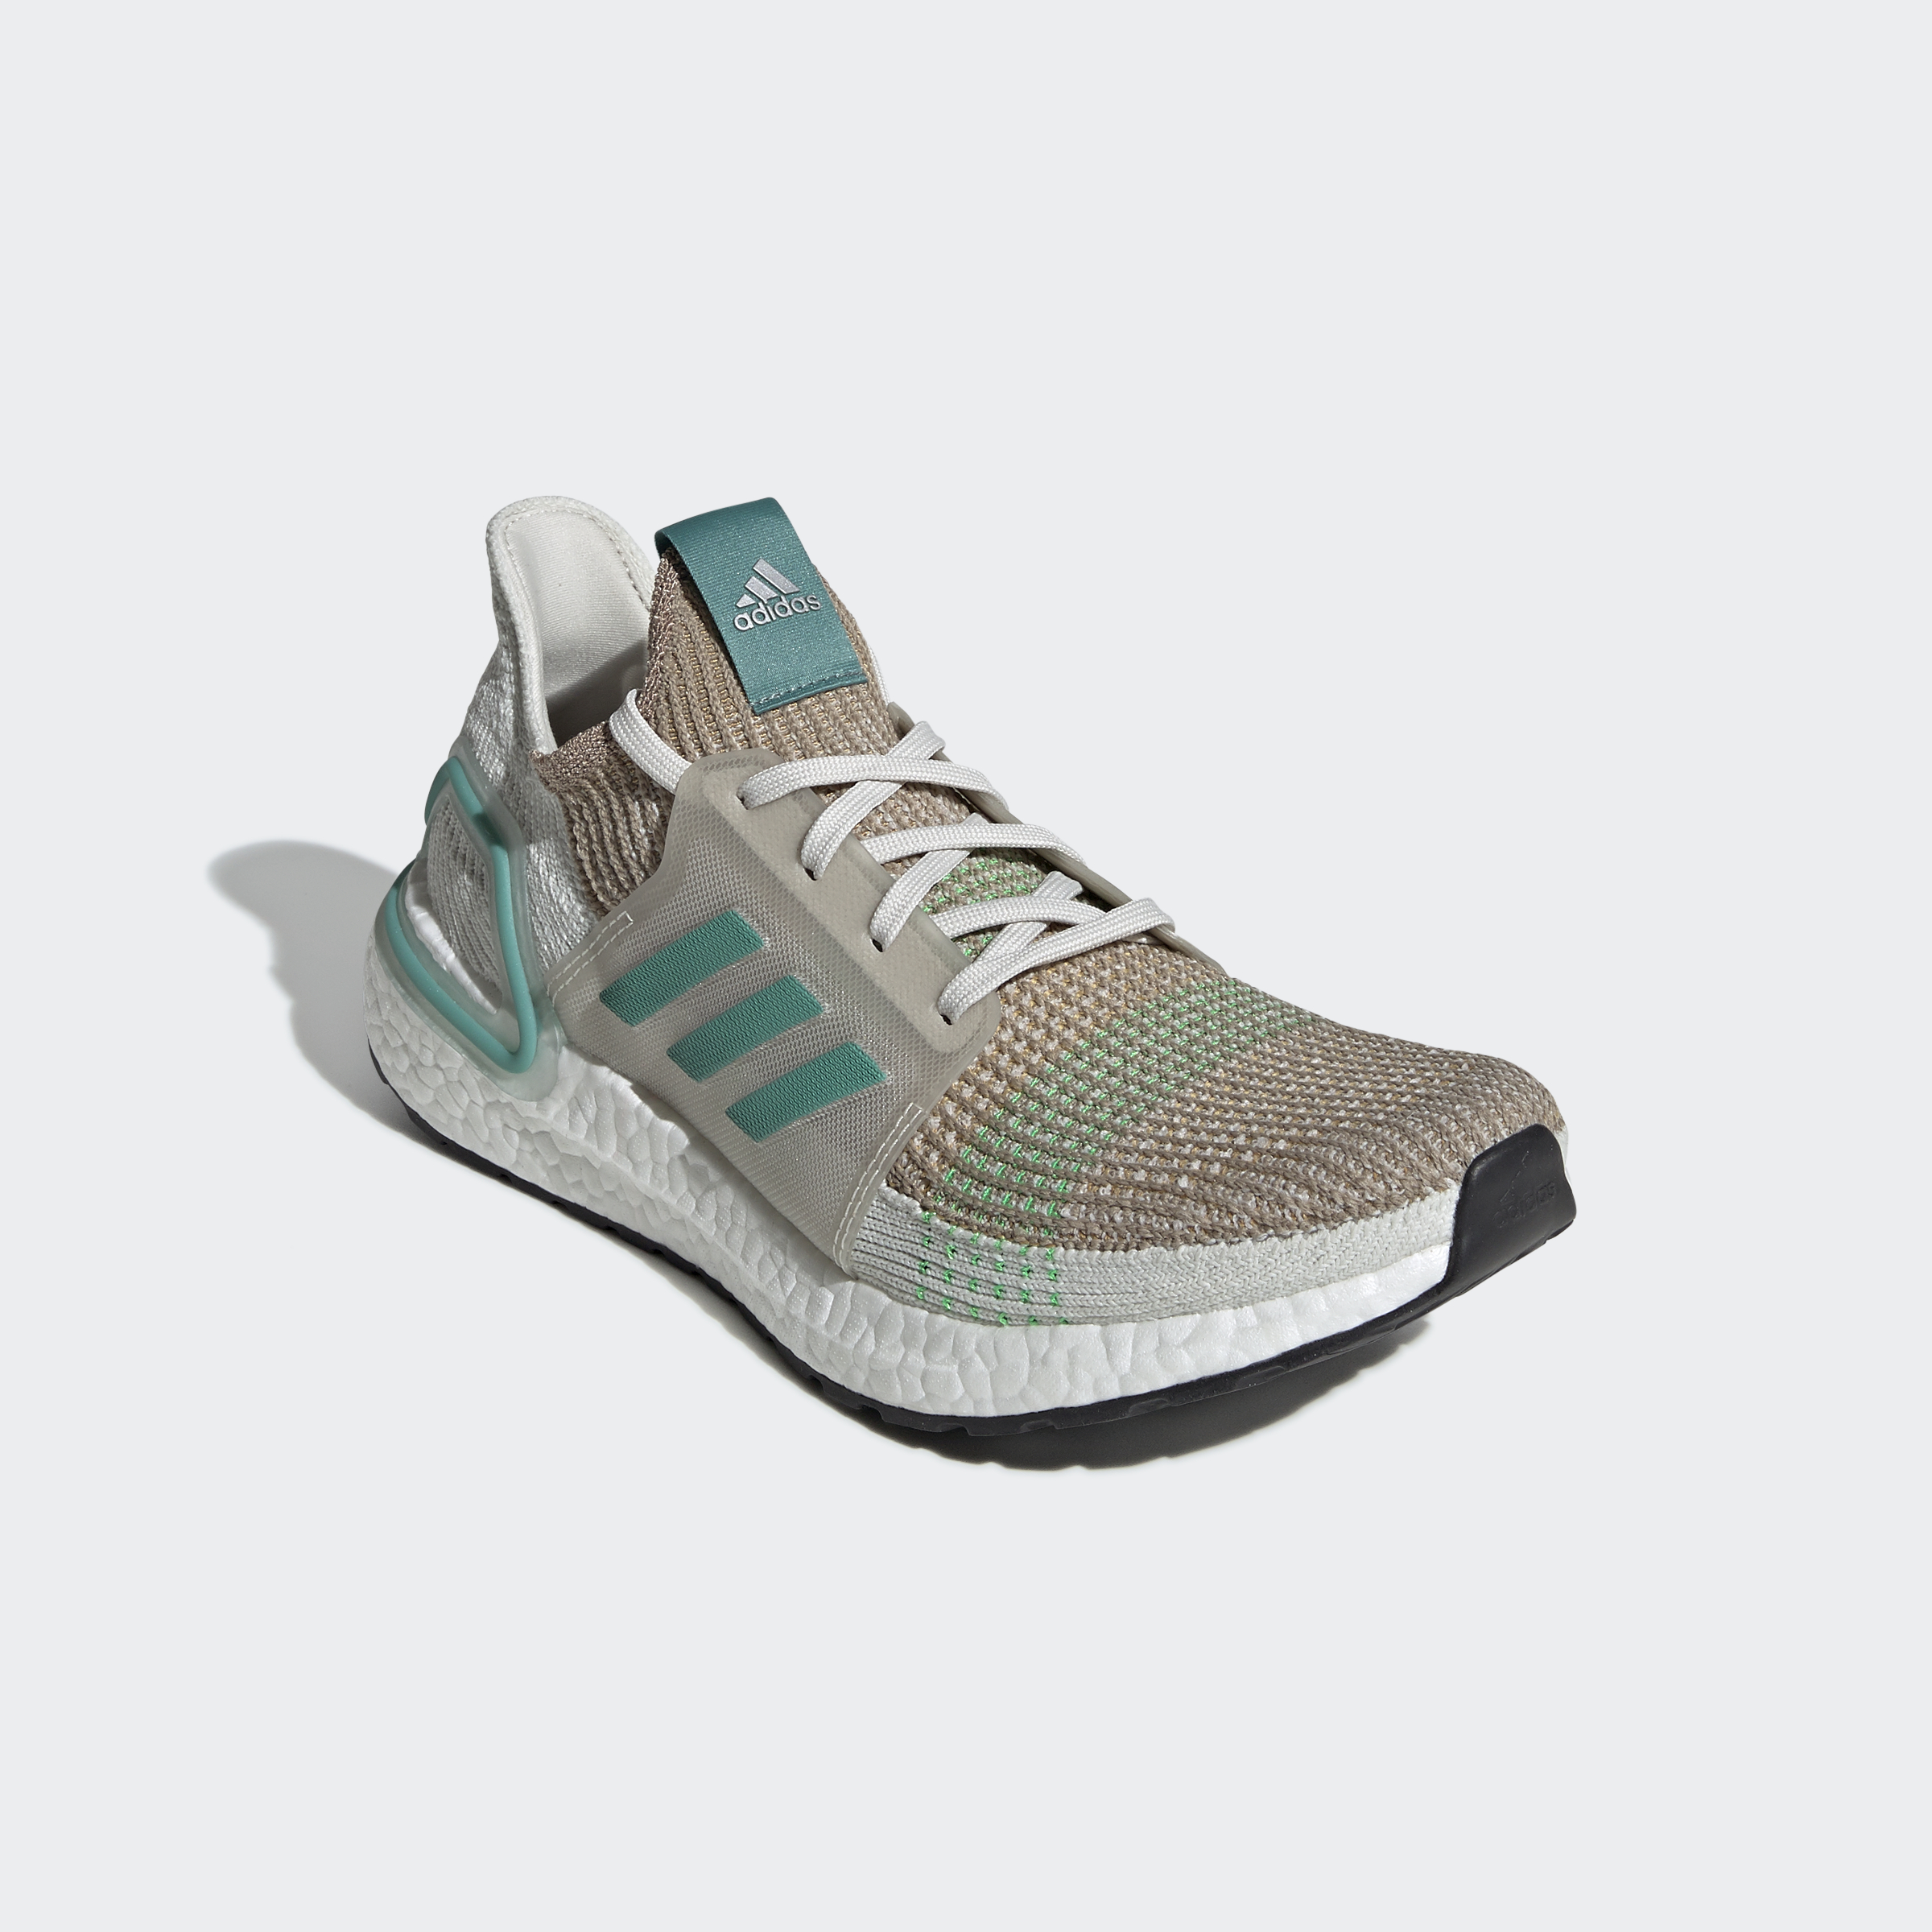 adidas-Ultraboost-19-Shoes-Athletic-amp-Sneakers thumbnail 22